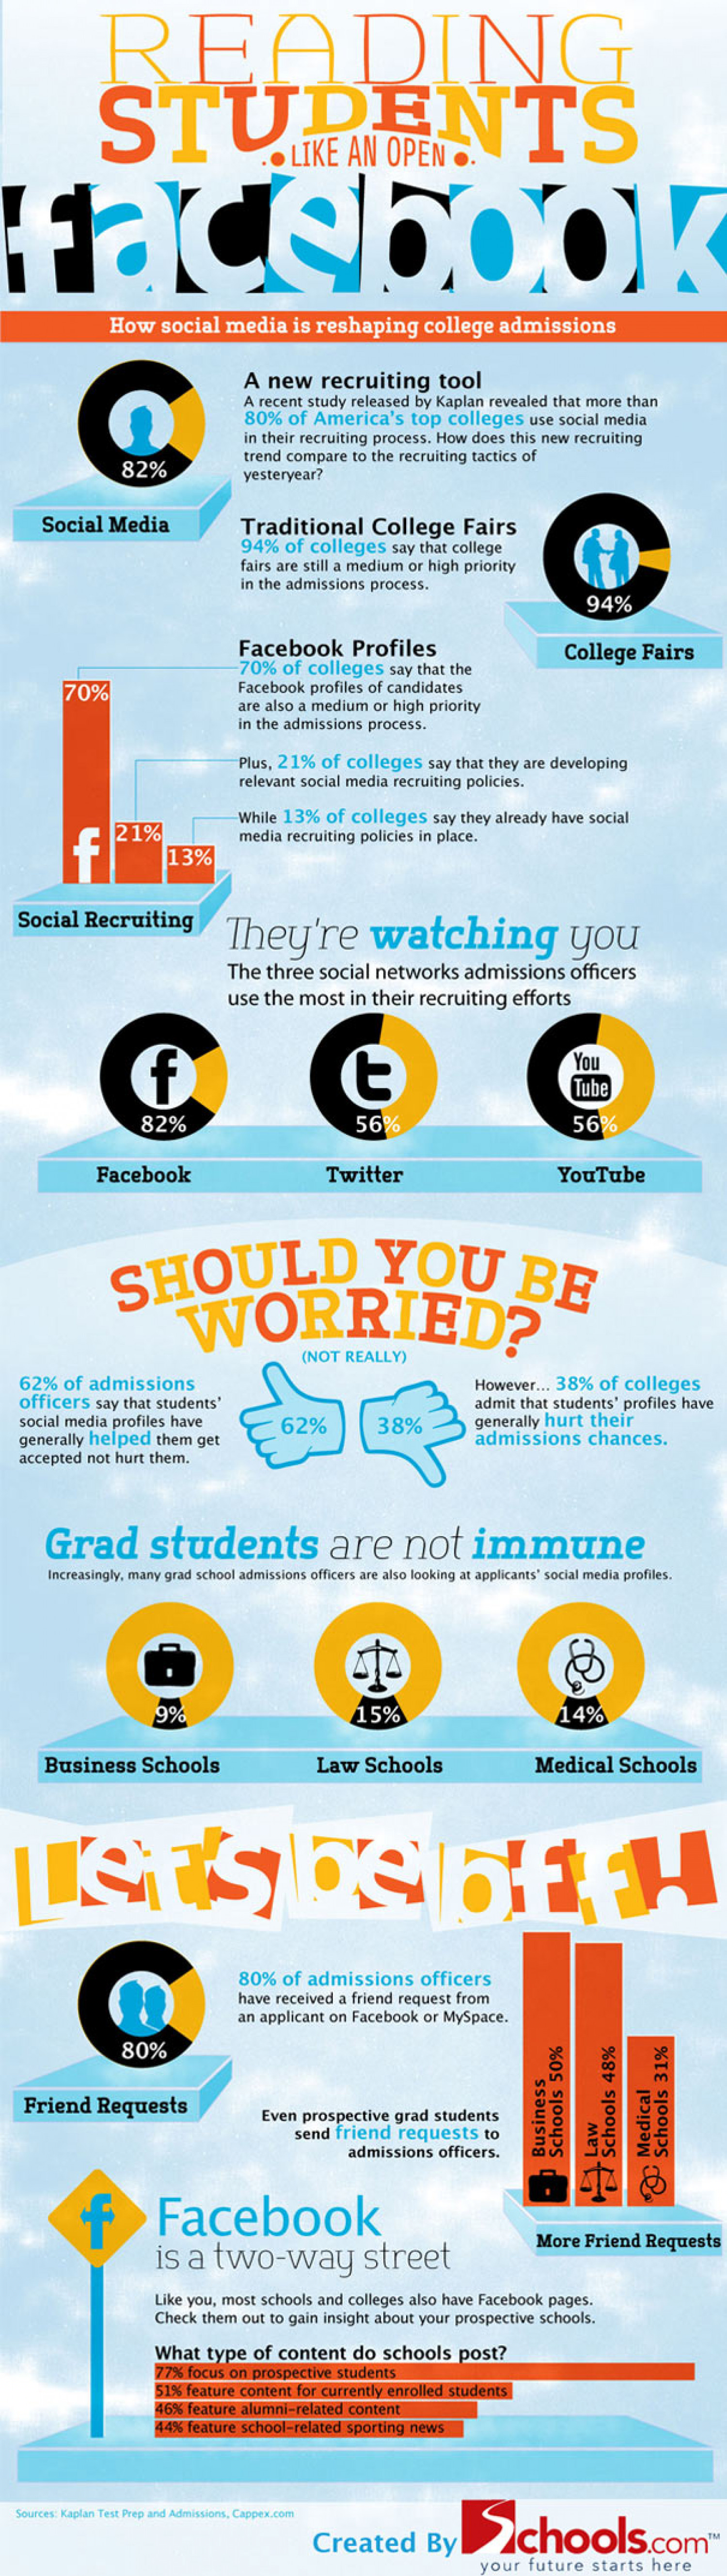 Reading Students Like an Open Facebook  Infographic